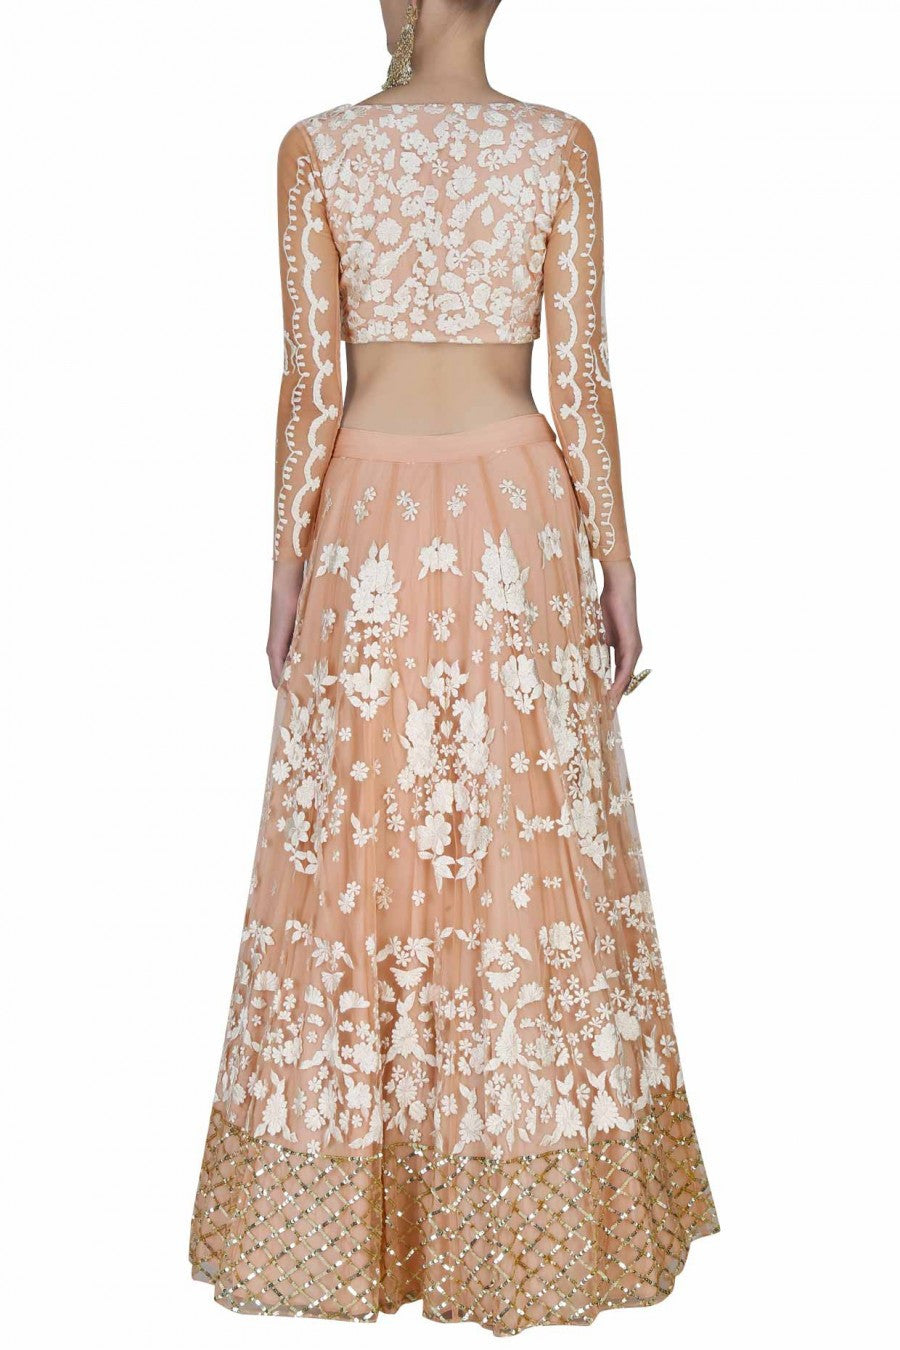 Peach lehenga with offwhite embroidery